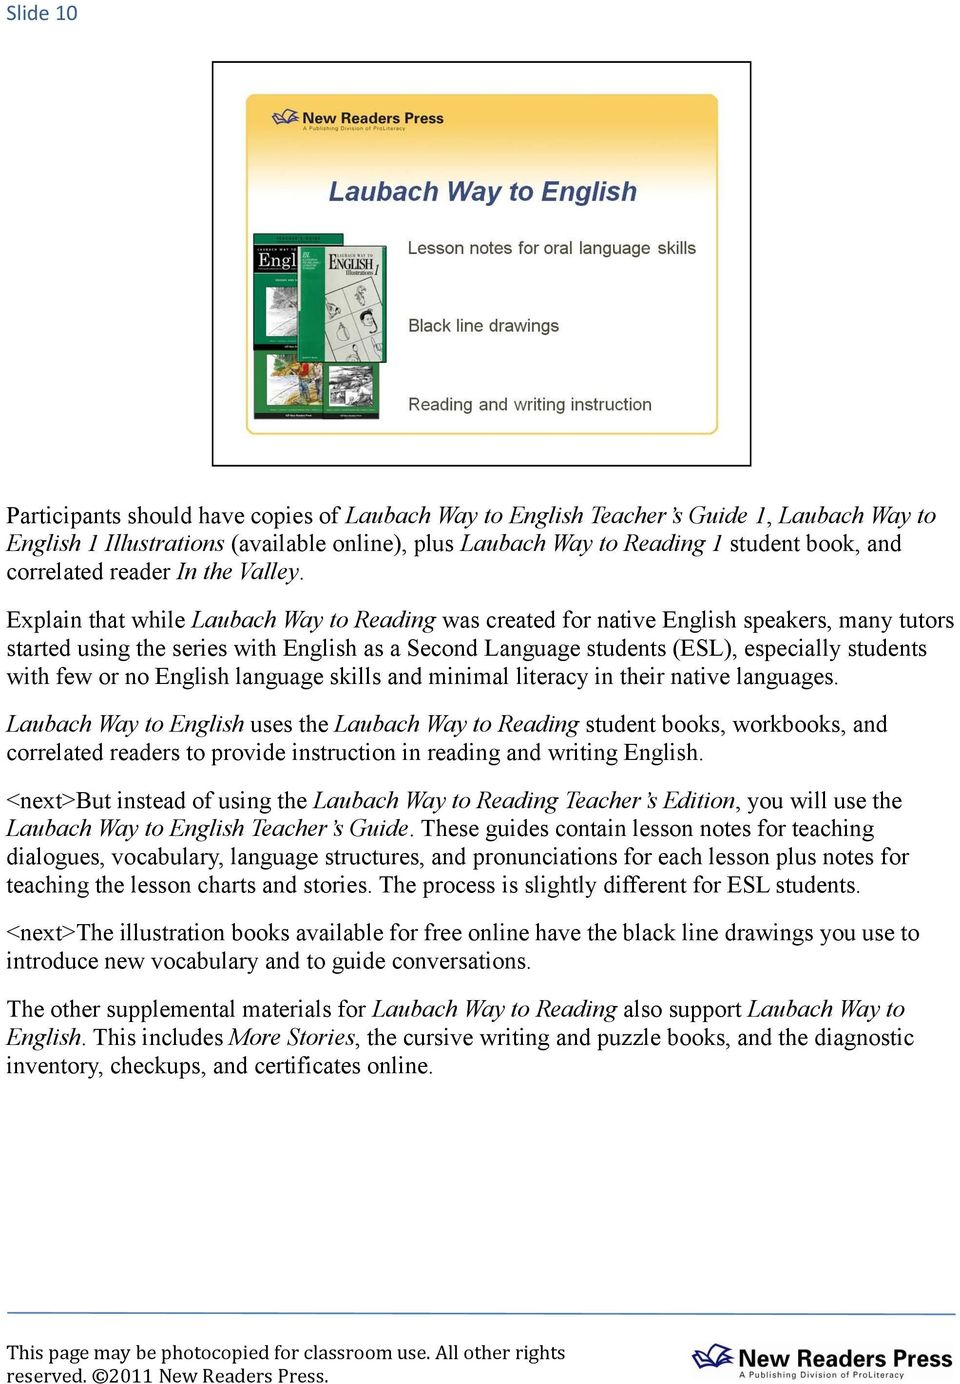 Explain that while Laubach Way to Reading was created for native English  speakers, many tutors